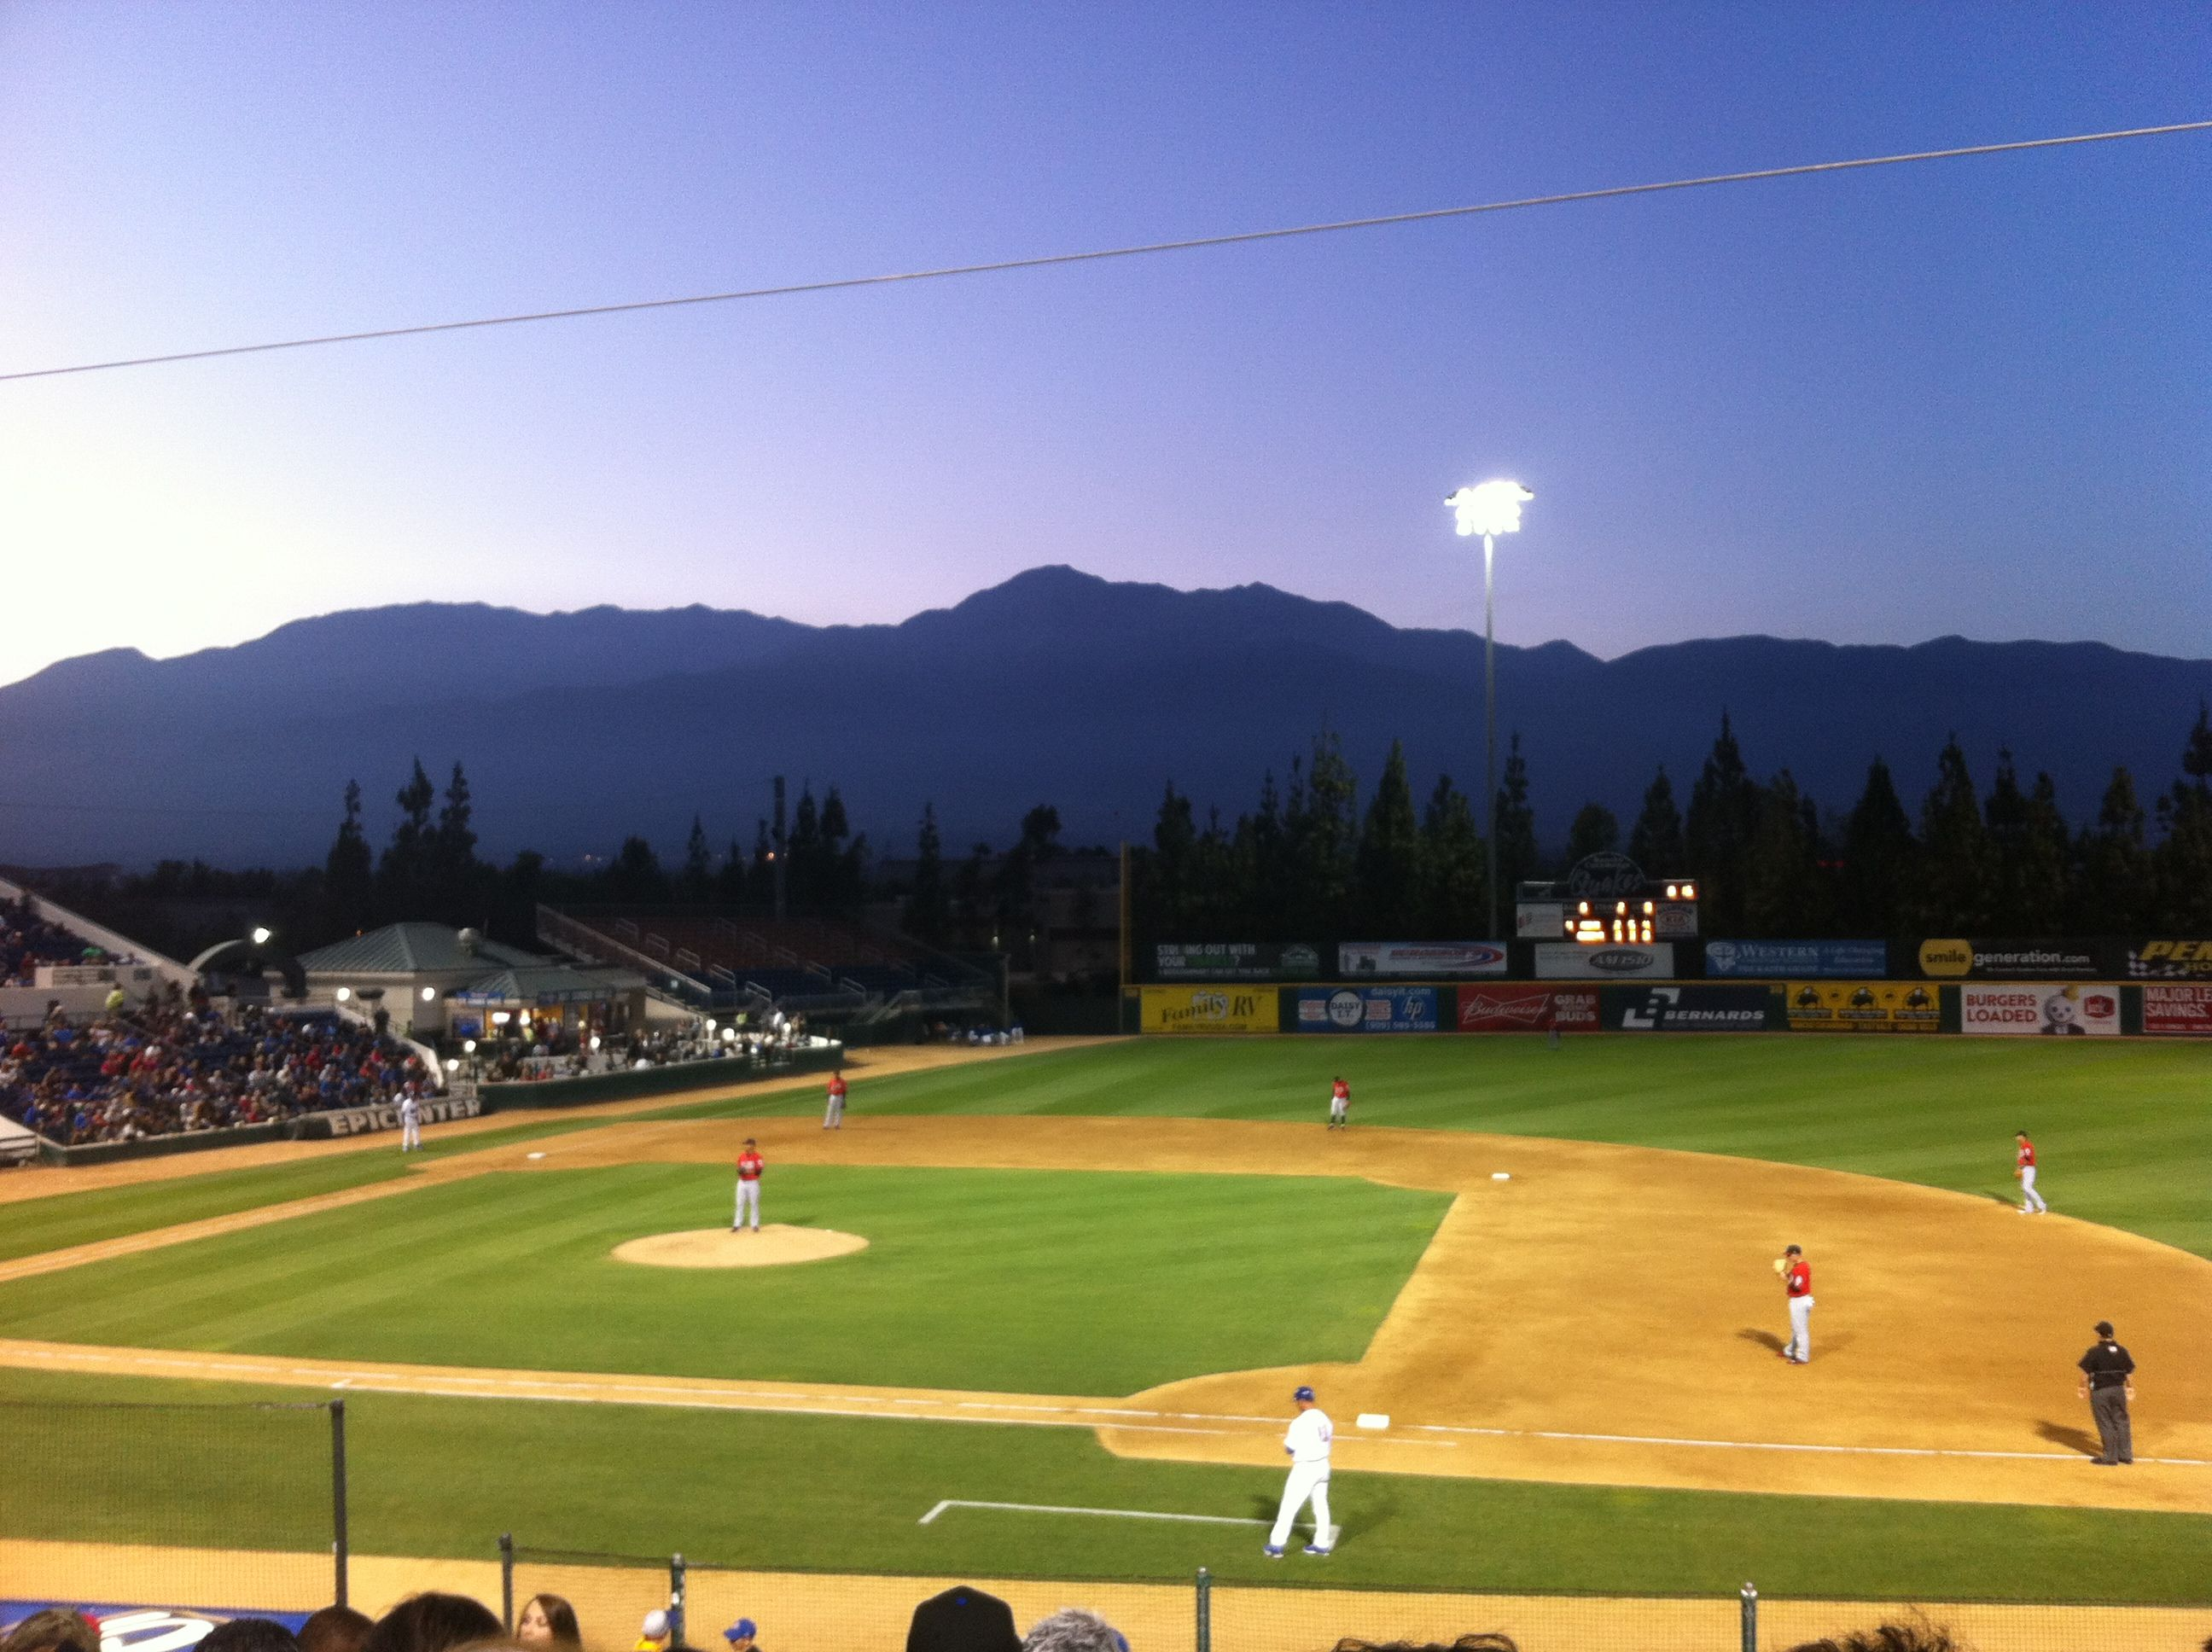 Epicenter With A Beautiful View Rancho Cucamonga Quakes Rancho Cucamonga Quakes Rancho Cucamonga Beautiful Views